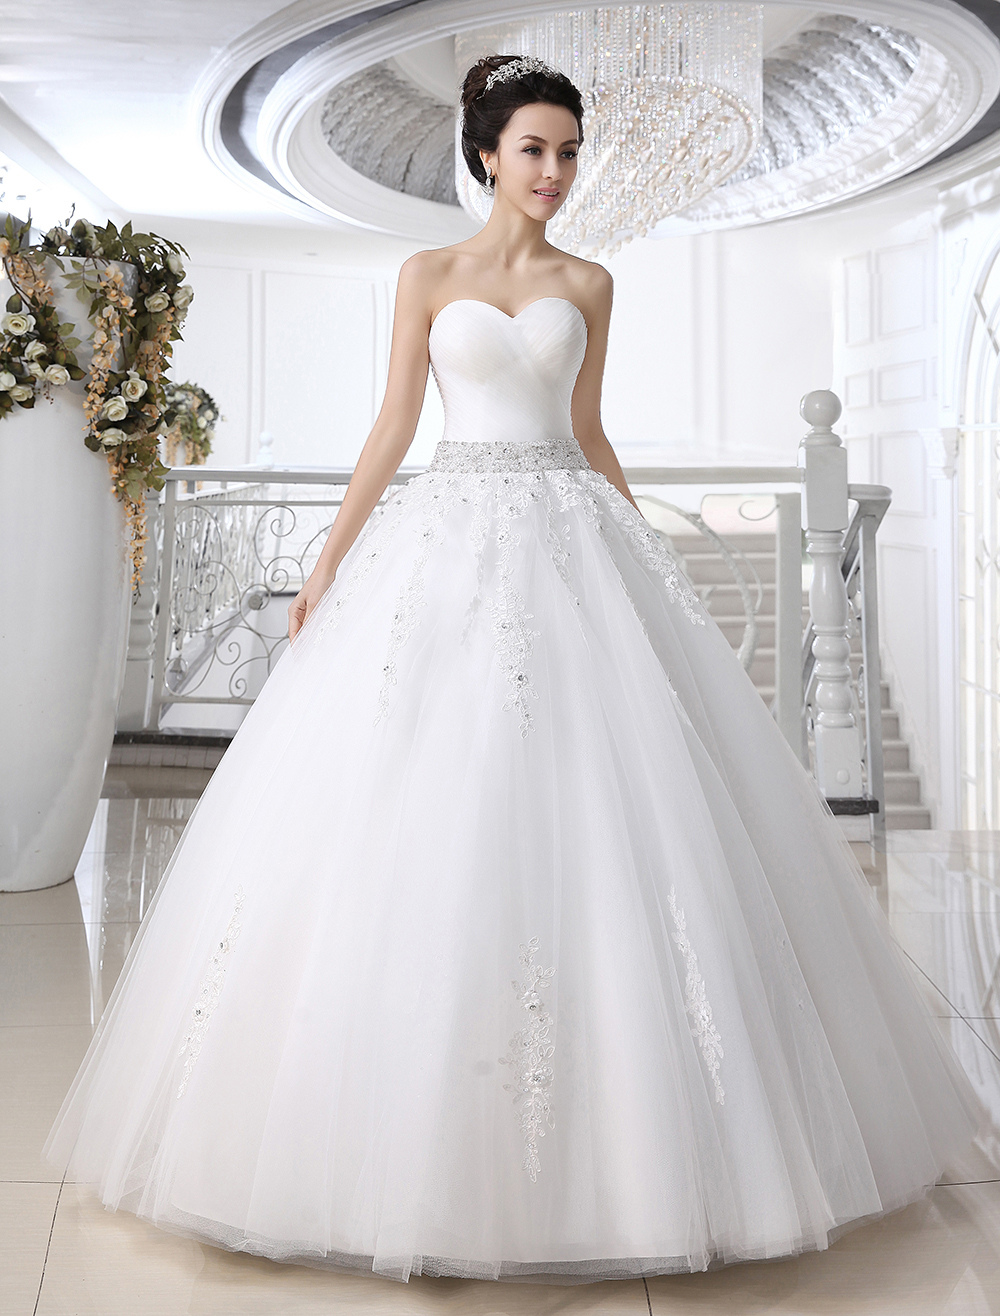 ... Sweetheart Neck Rhinestone Floor-Length Wedding Dress - Milanoo.com